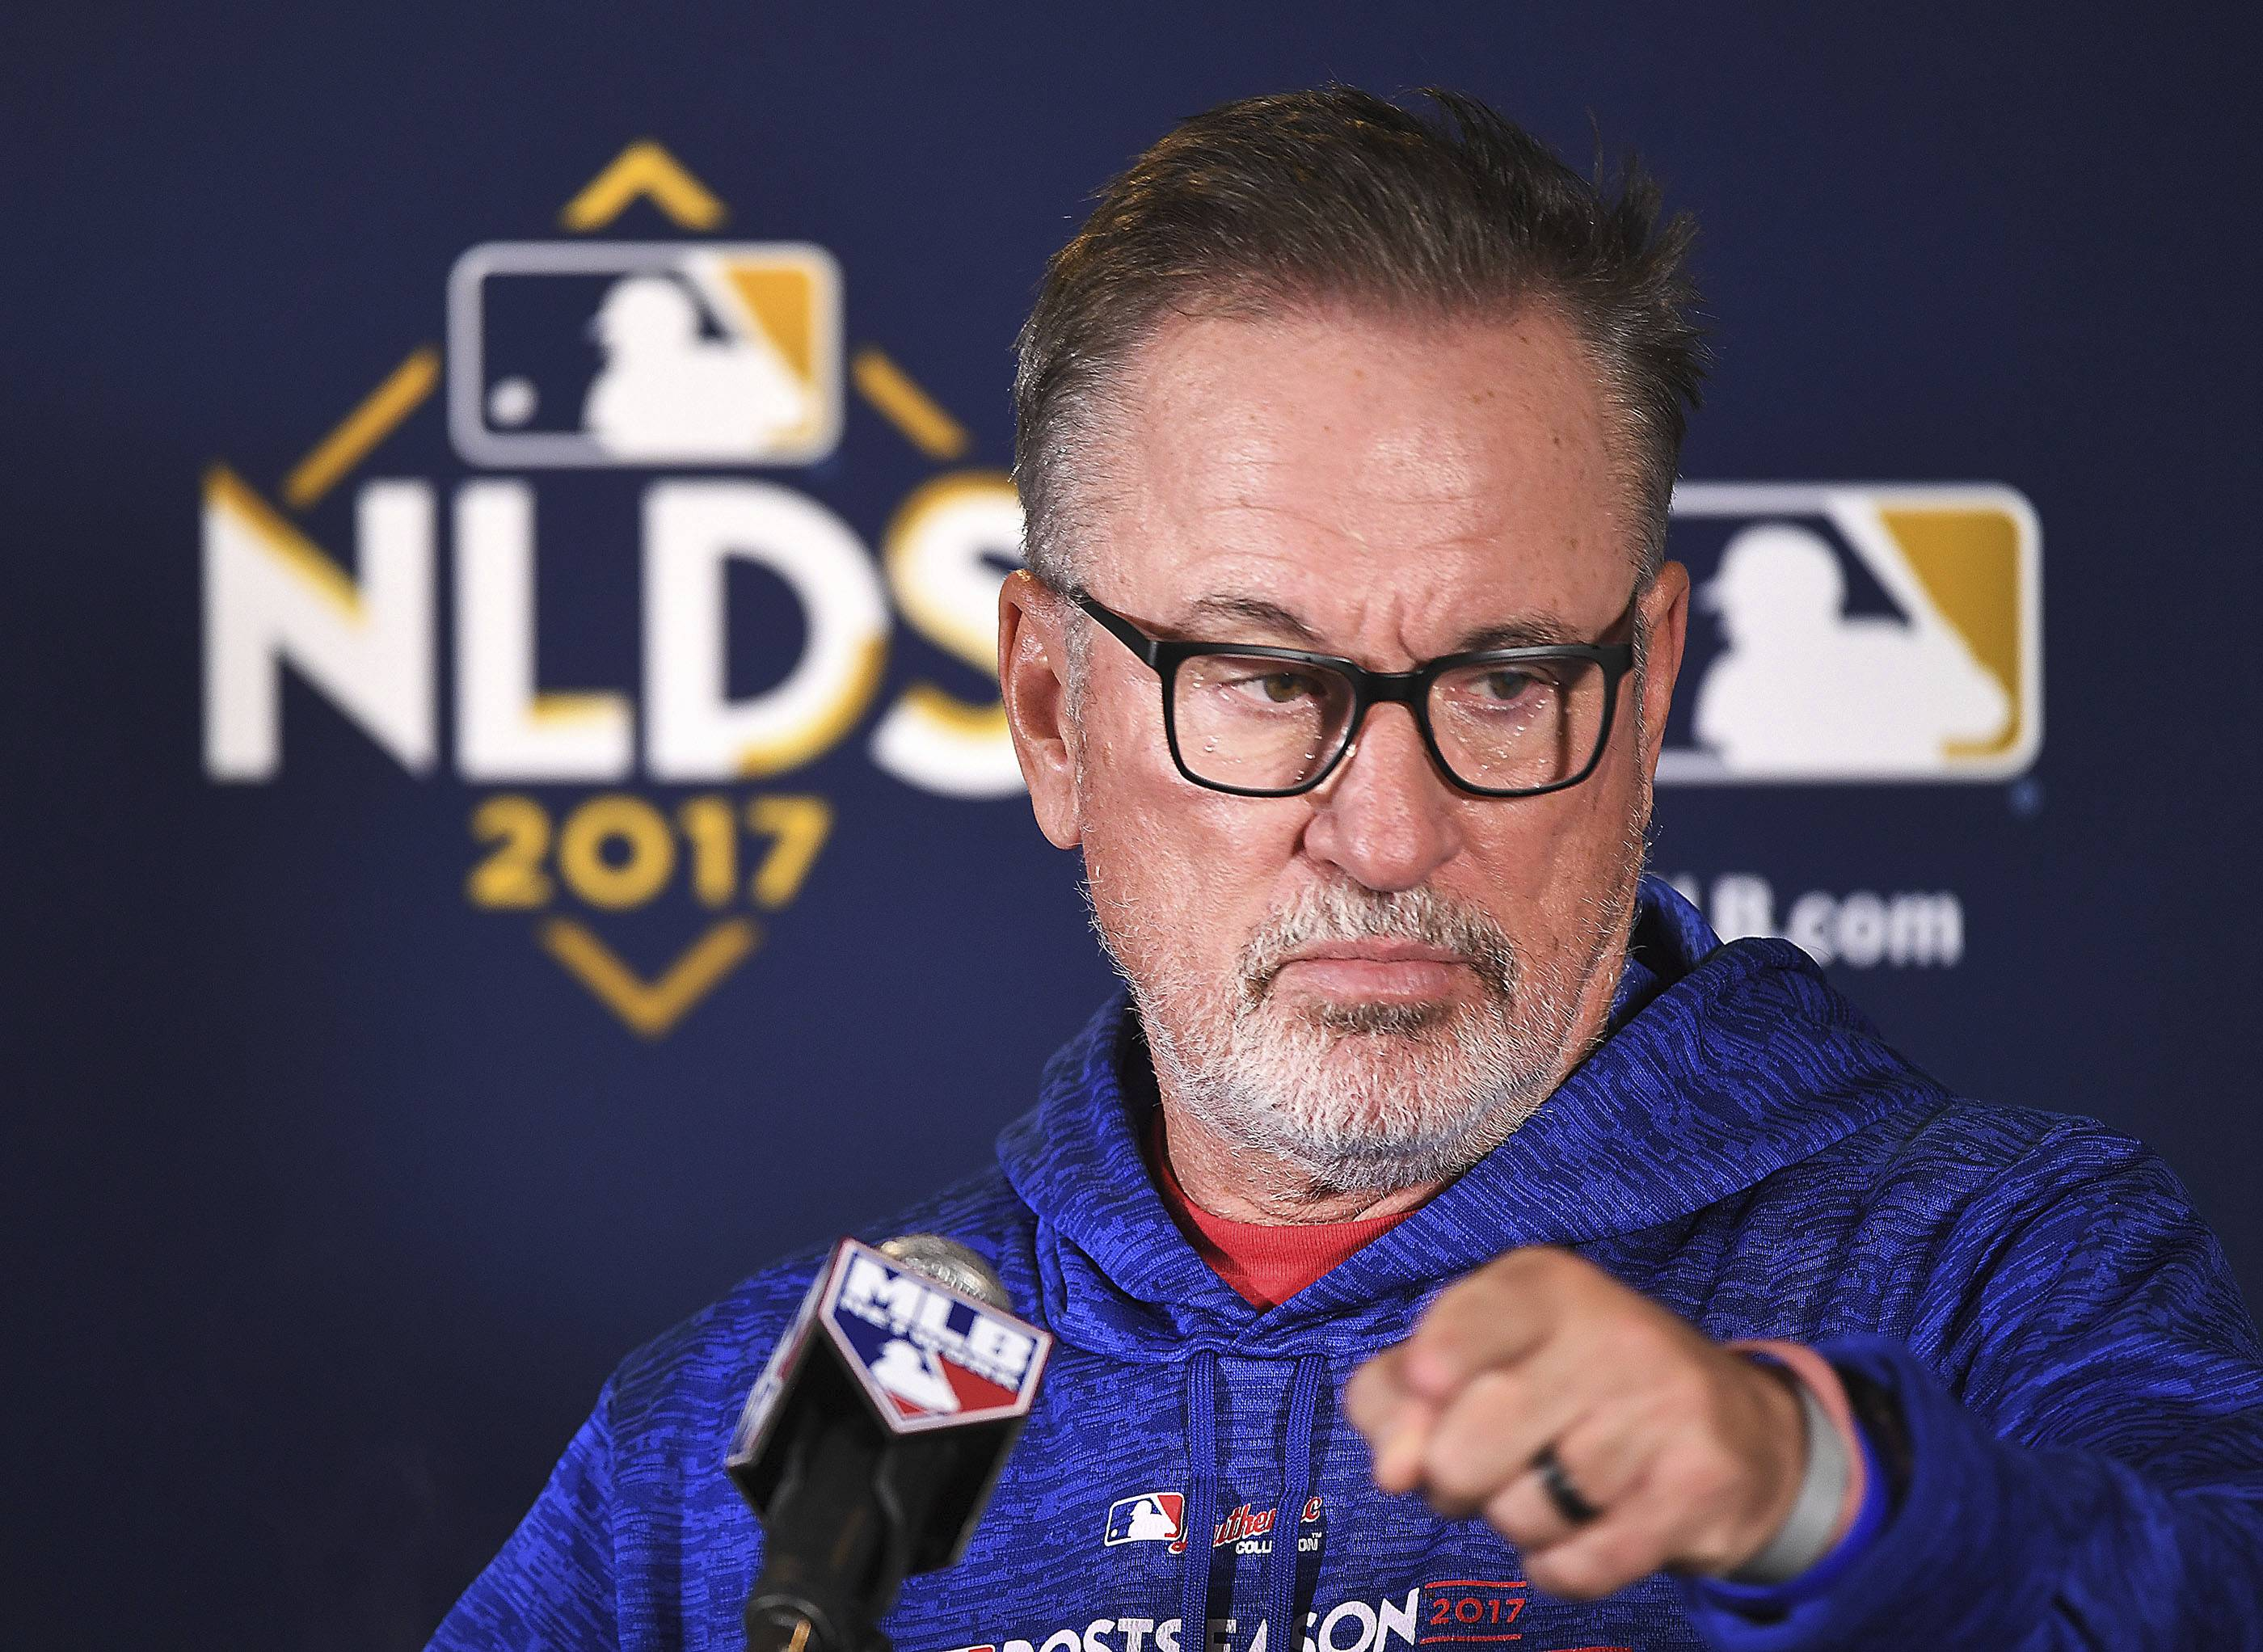 Maddon: 'Respect'-seeking Rizzo is underrated